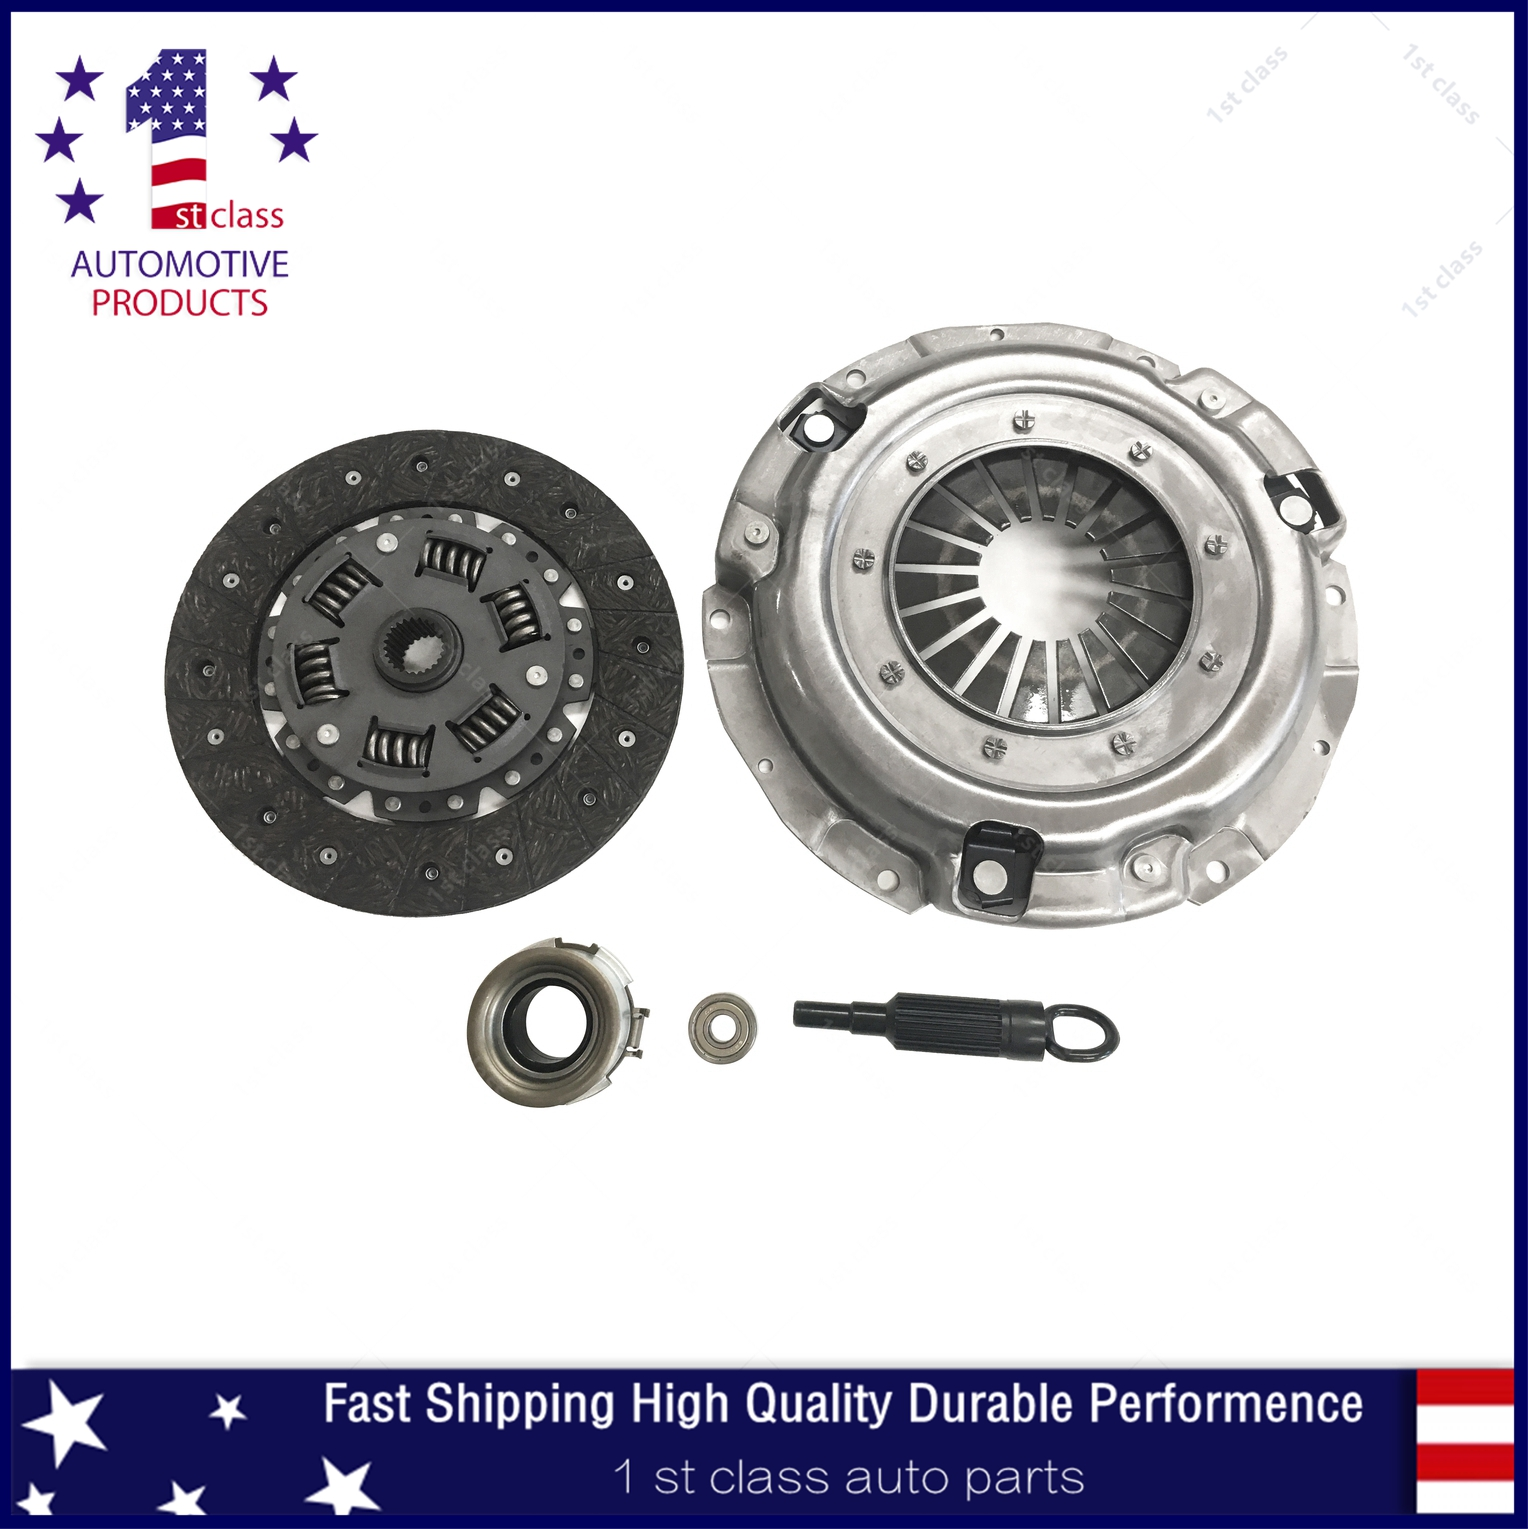 Costume 2006 Saab 9 2x Linear: NEW CLUTCH KIT FITS SUBARU BAJA FORESTER IMPREZA LEGACY